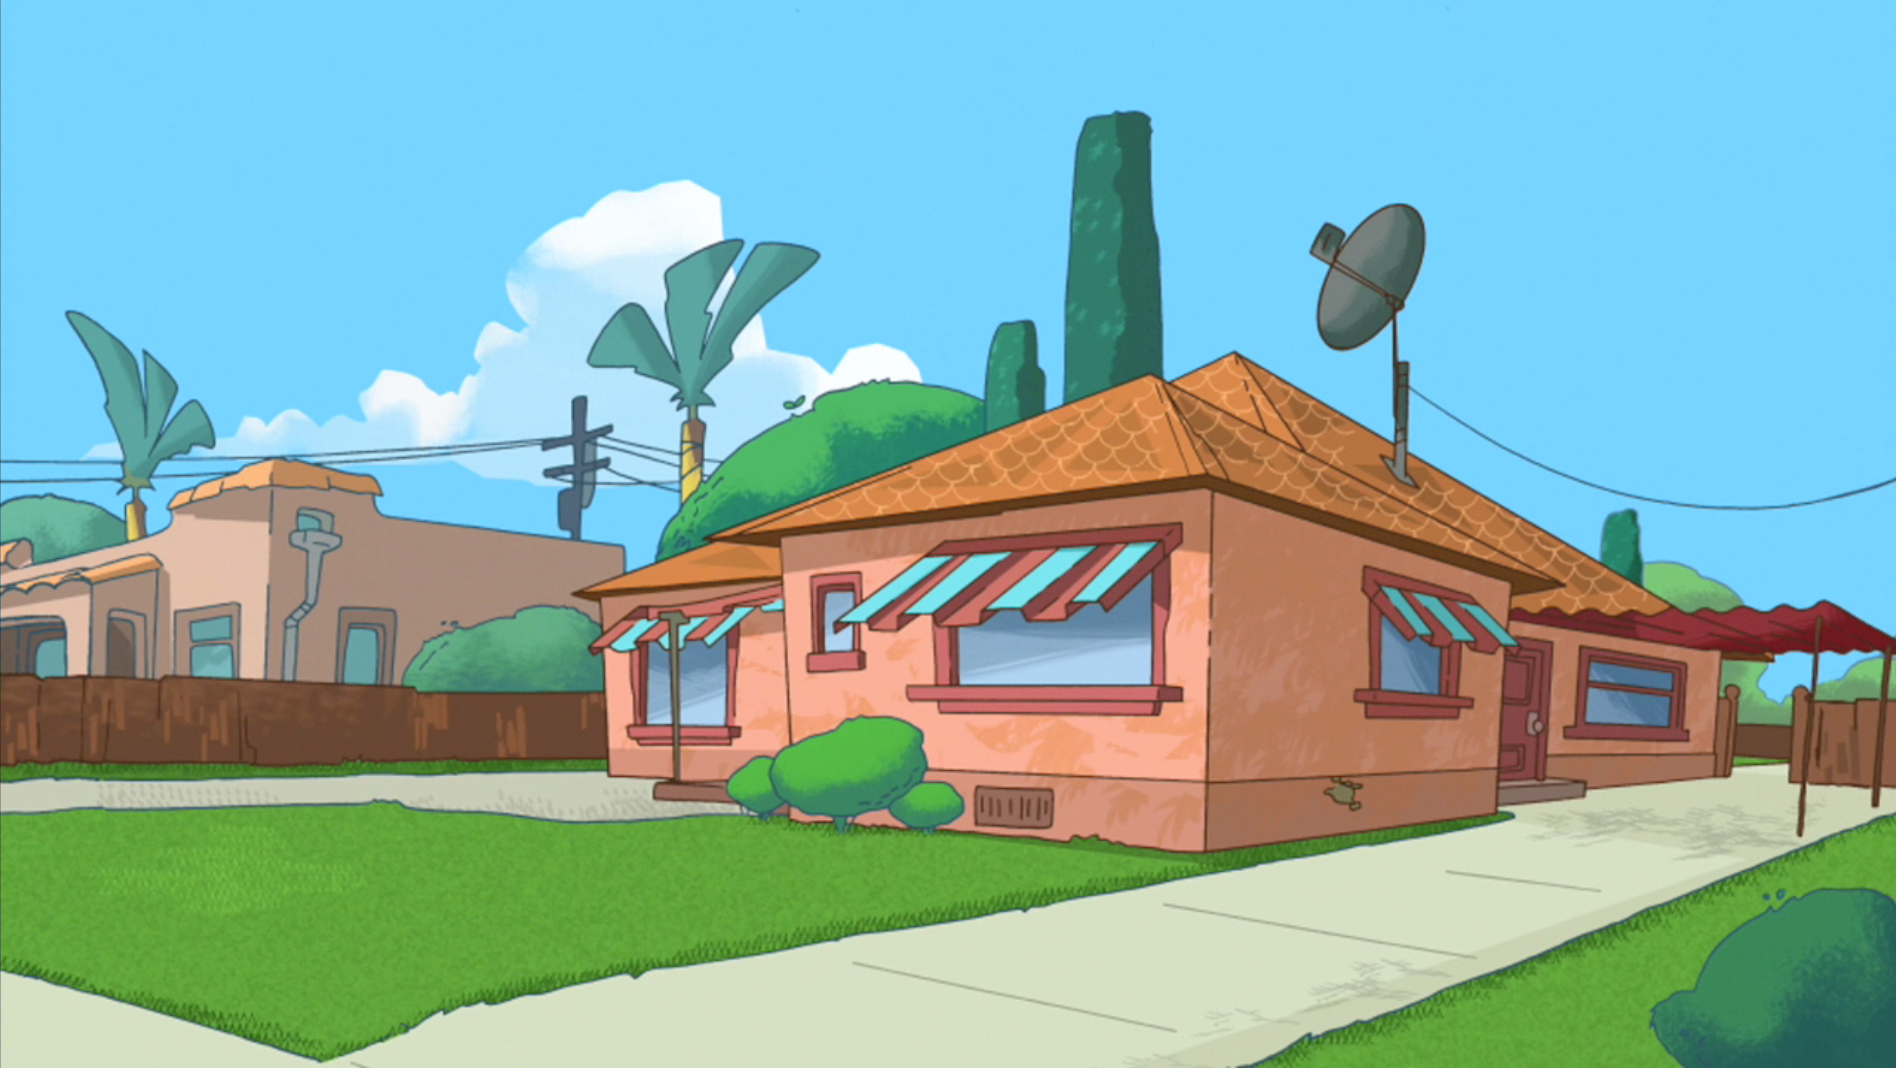 Garcia shapiro house phineas and ferb wiki fandom for Isabella house